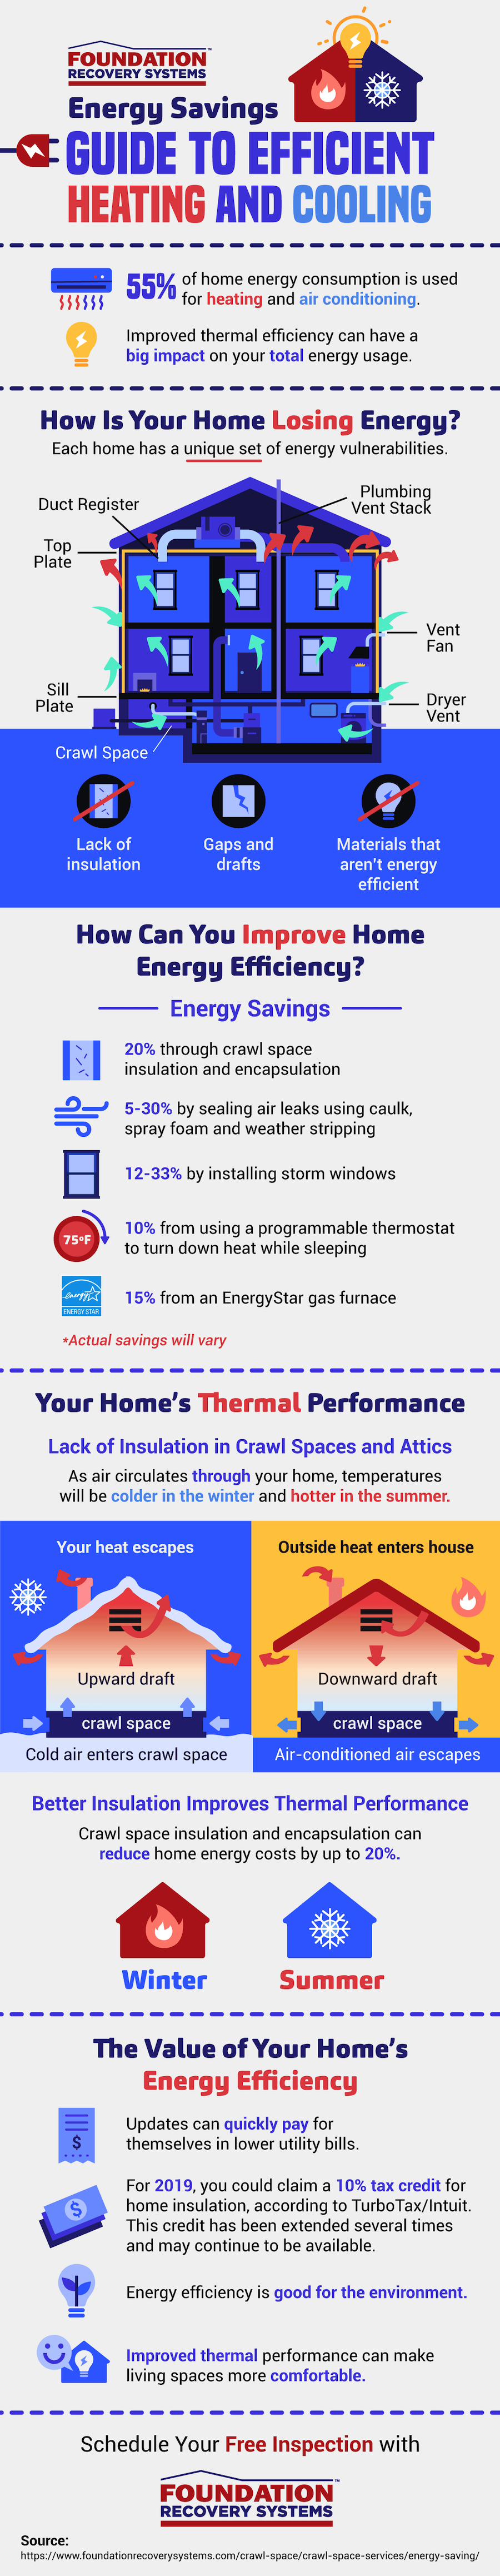 Saving Money With a More Efficient Heating and Cooling System